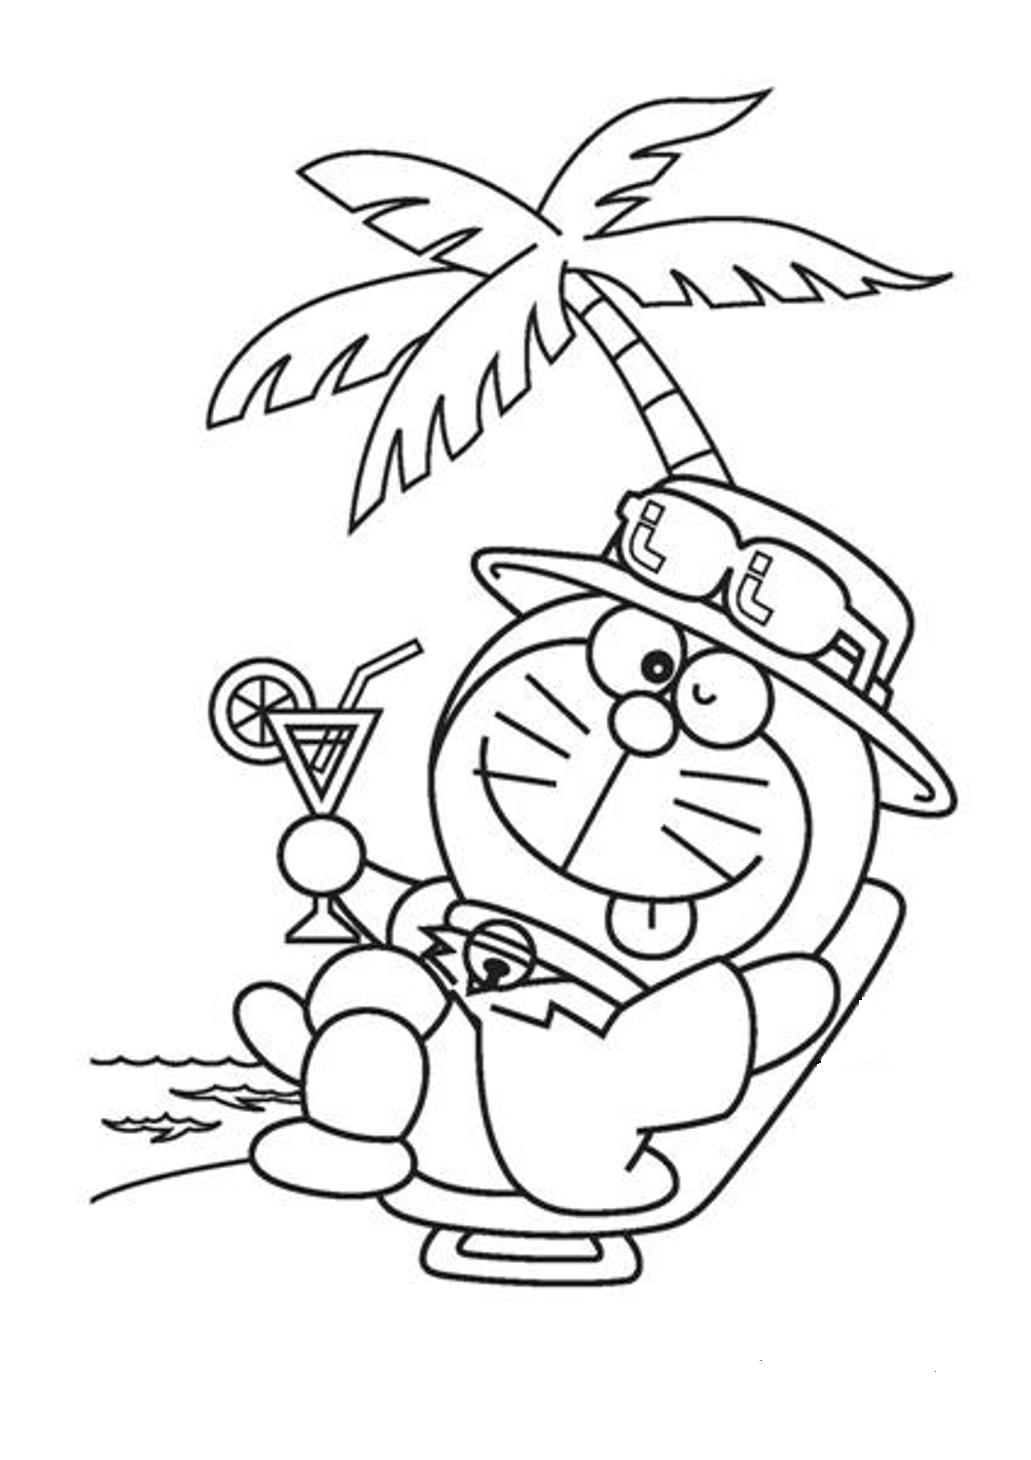 Fascinating Yet Mysterious Adventure Of Alice 20 Alice In Wonderland Coloring Pages